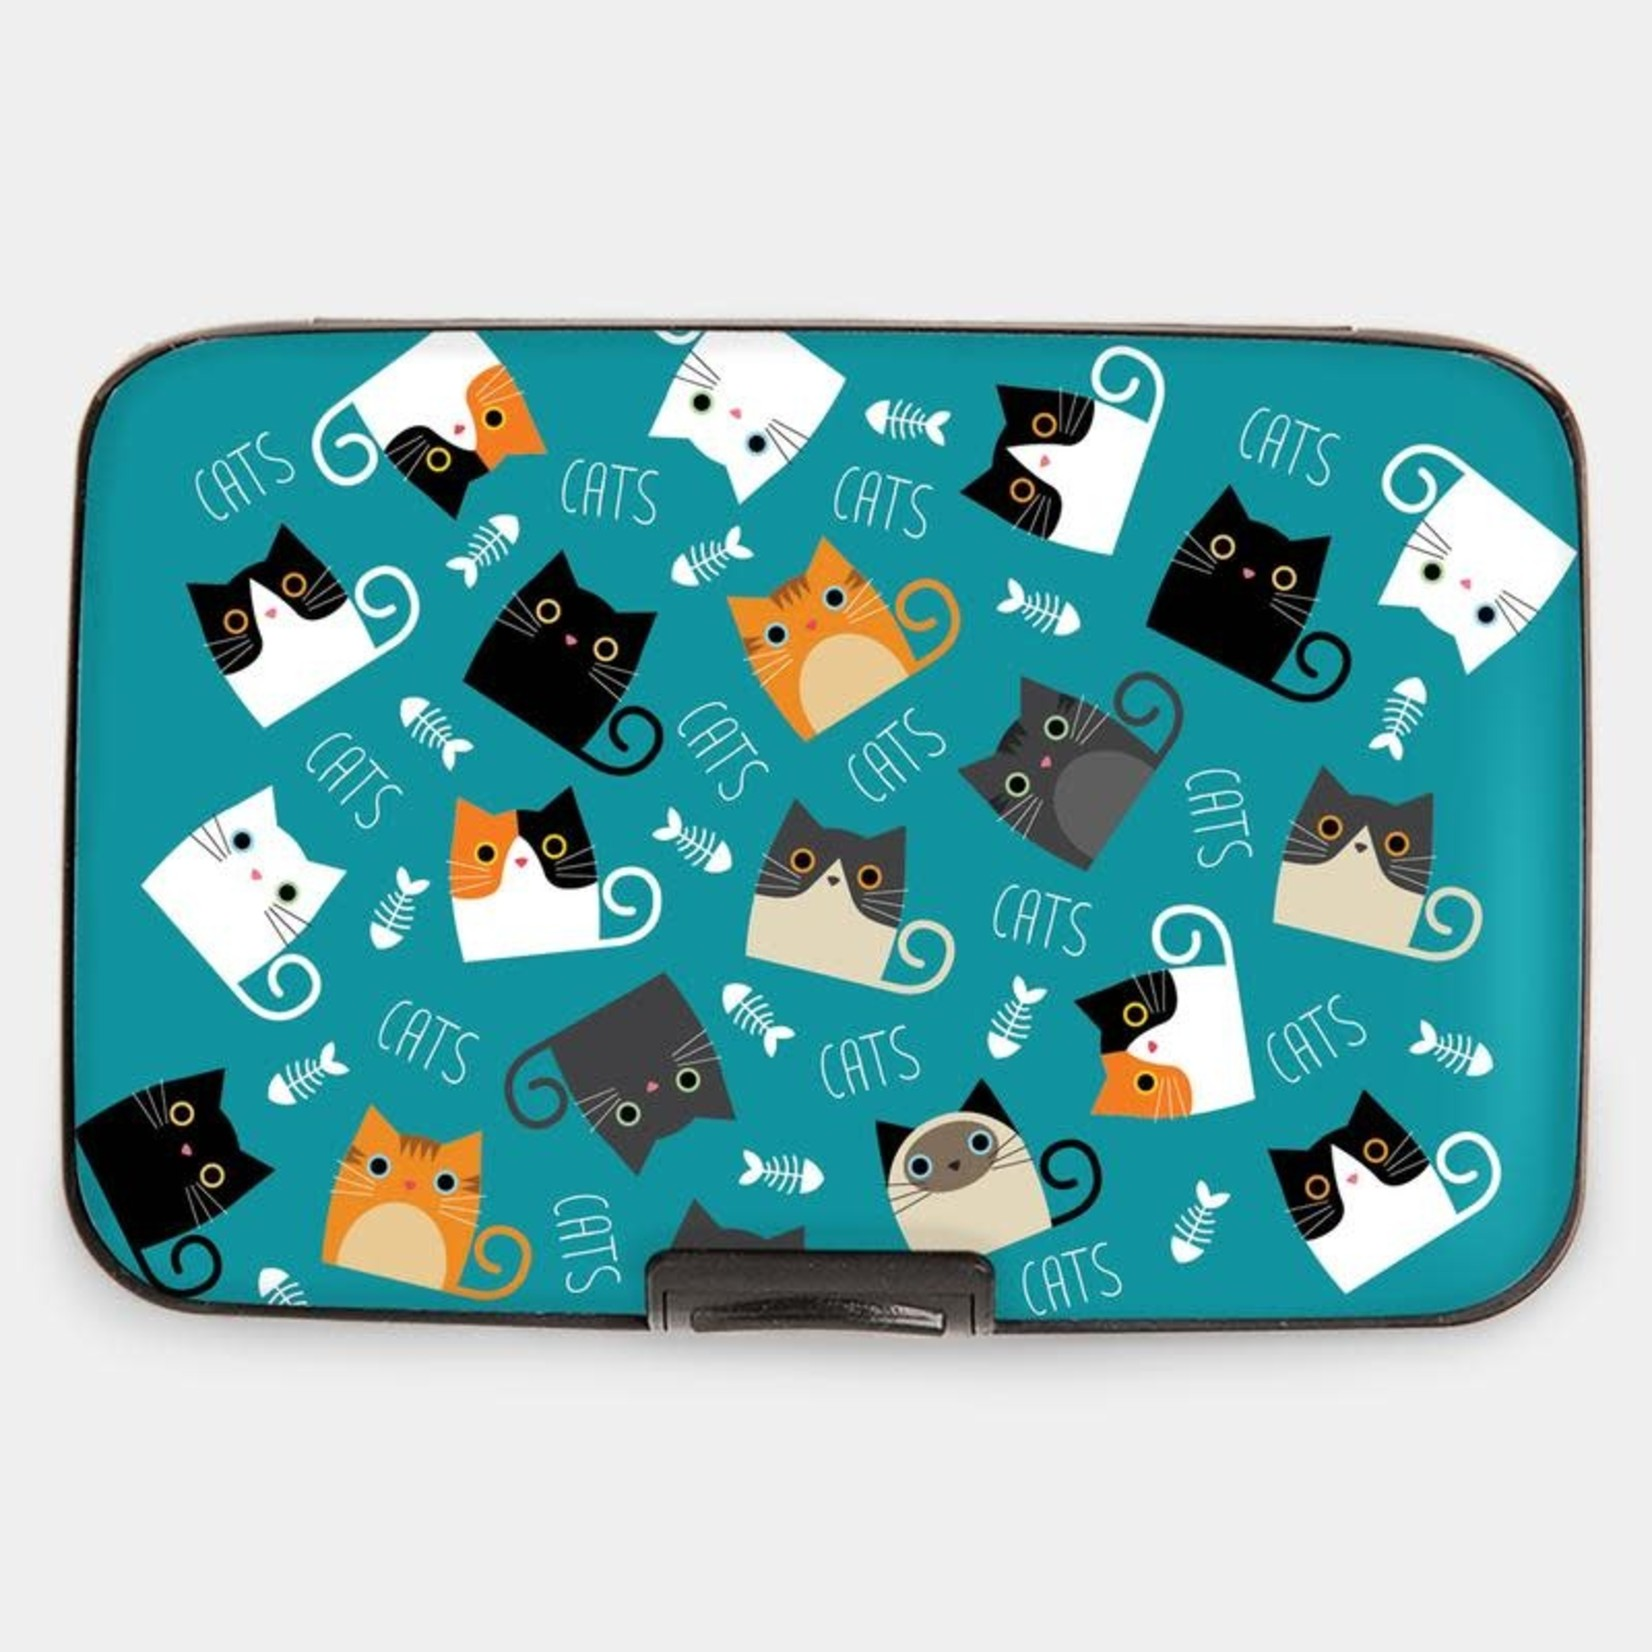 Monarque Armored Wallet - Cats with Fish